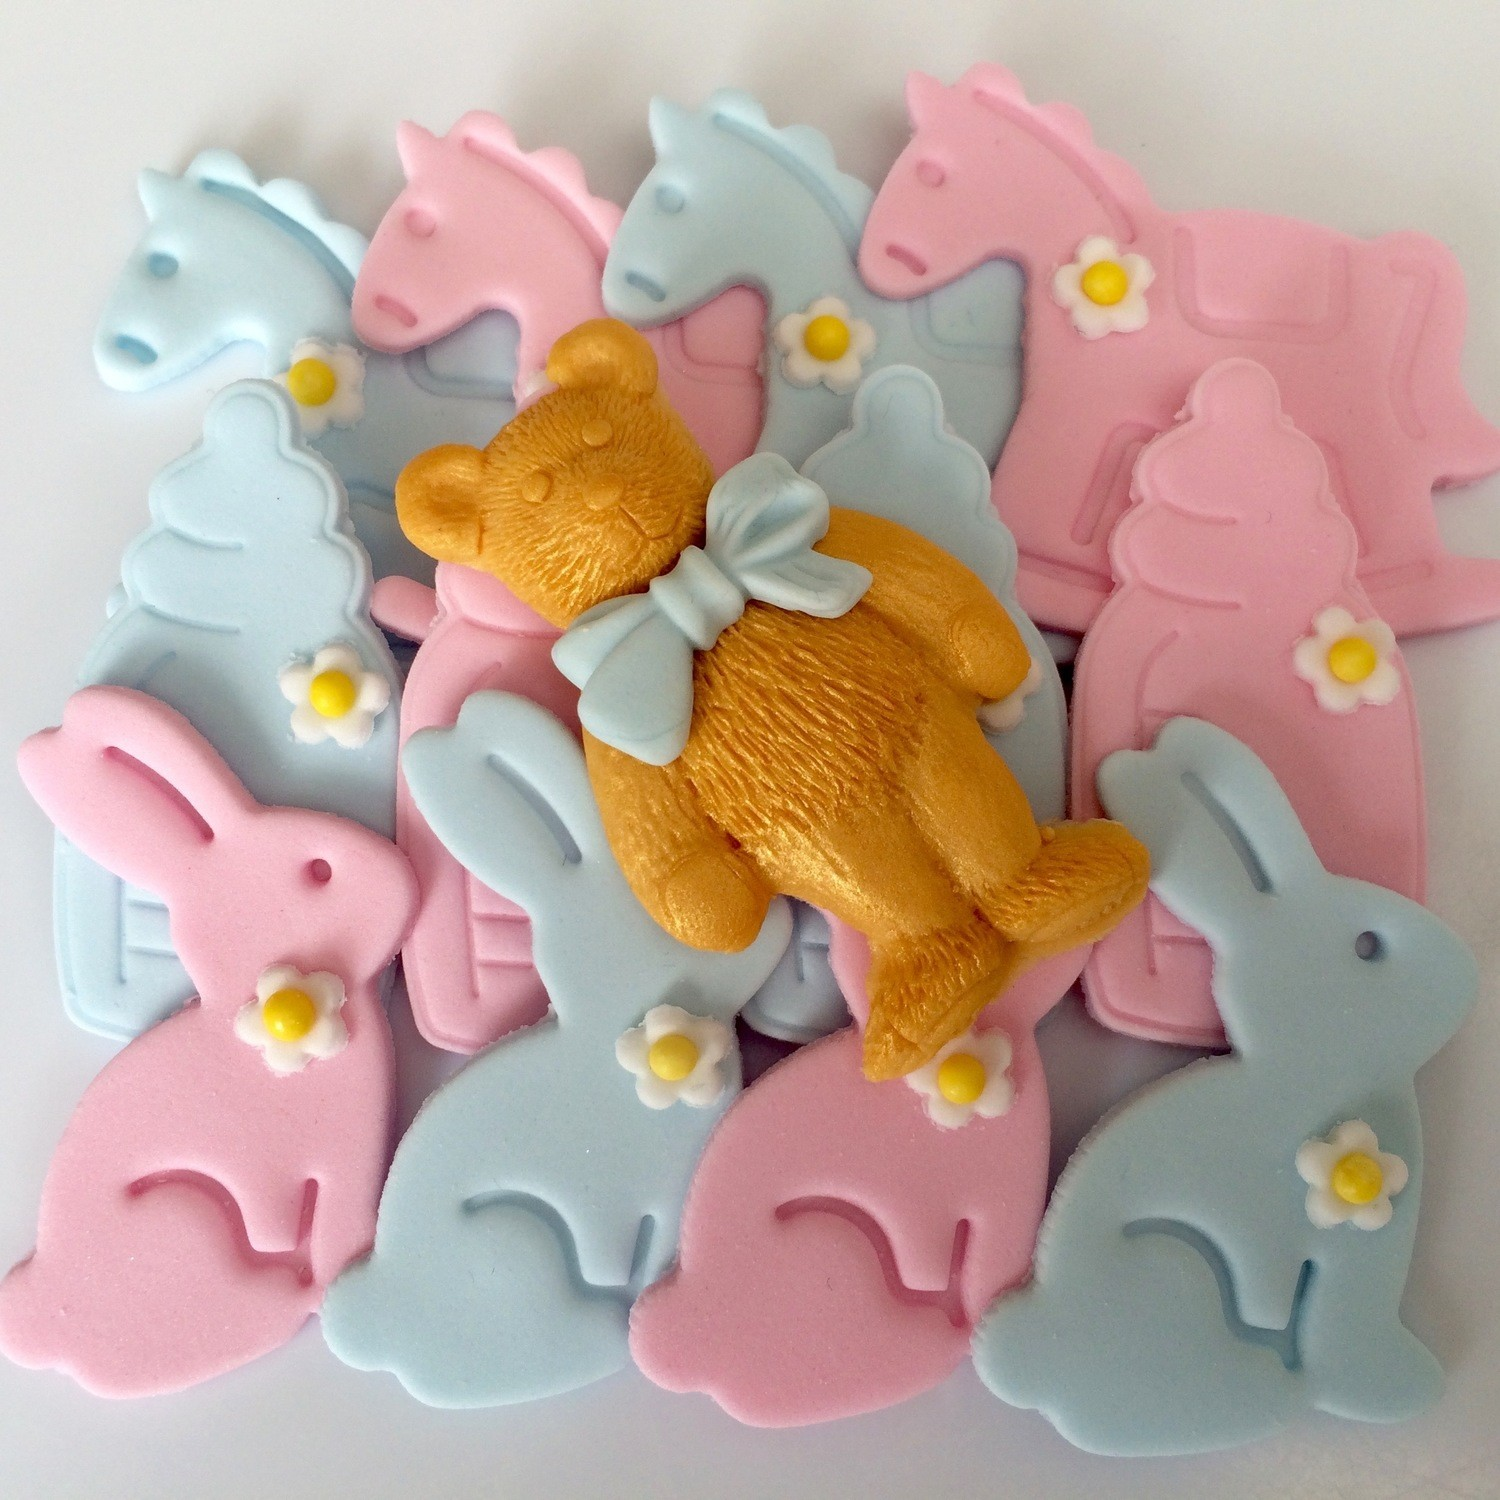 Baby Christening Cake Decorations